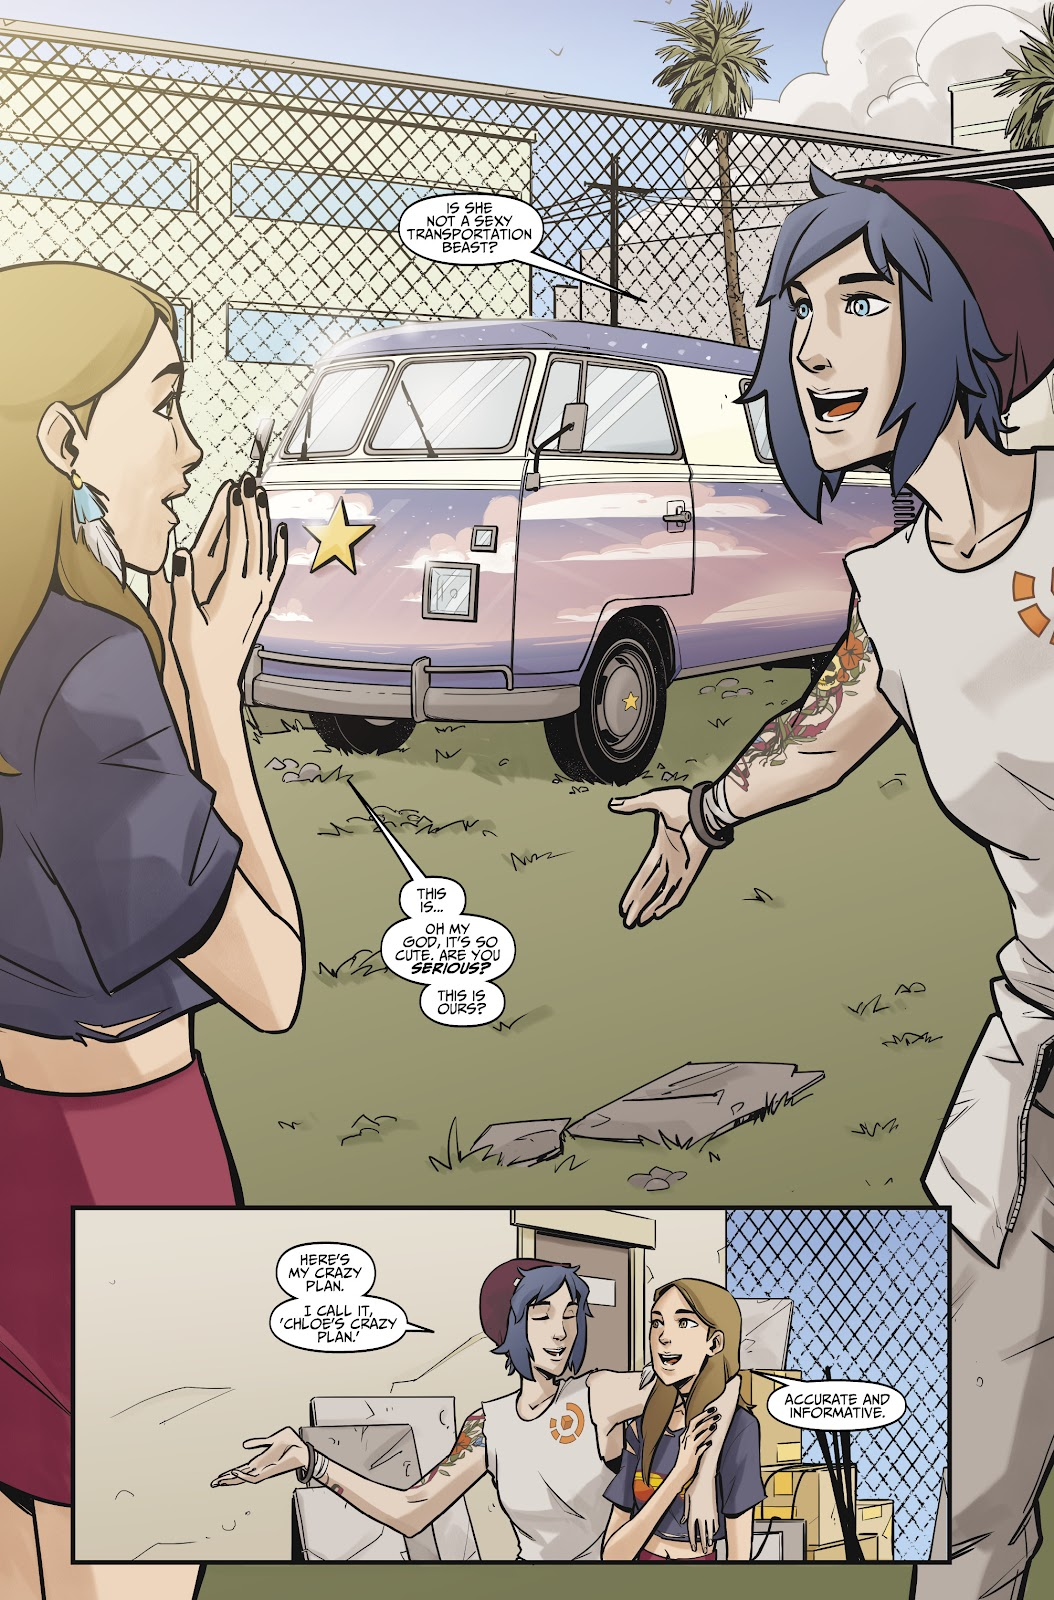 Read online Life is Strange comic -  Issue #10 - 8